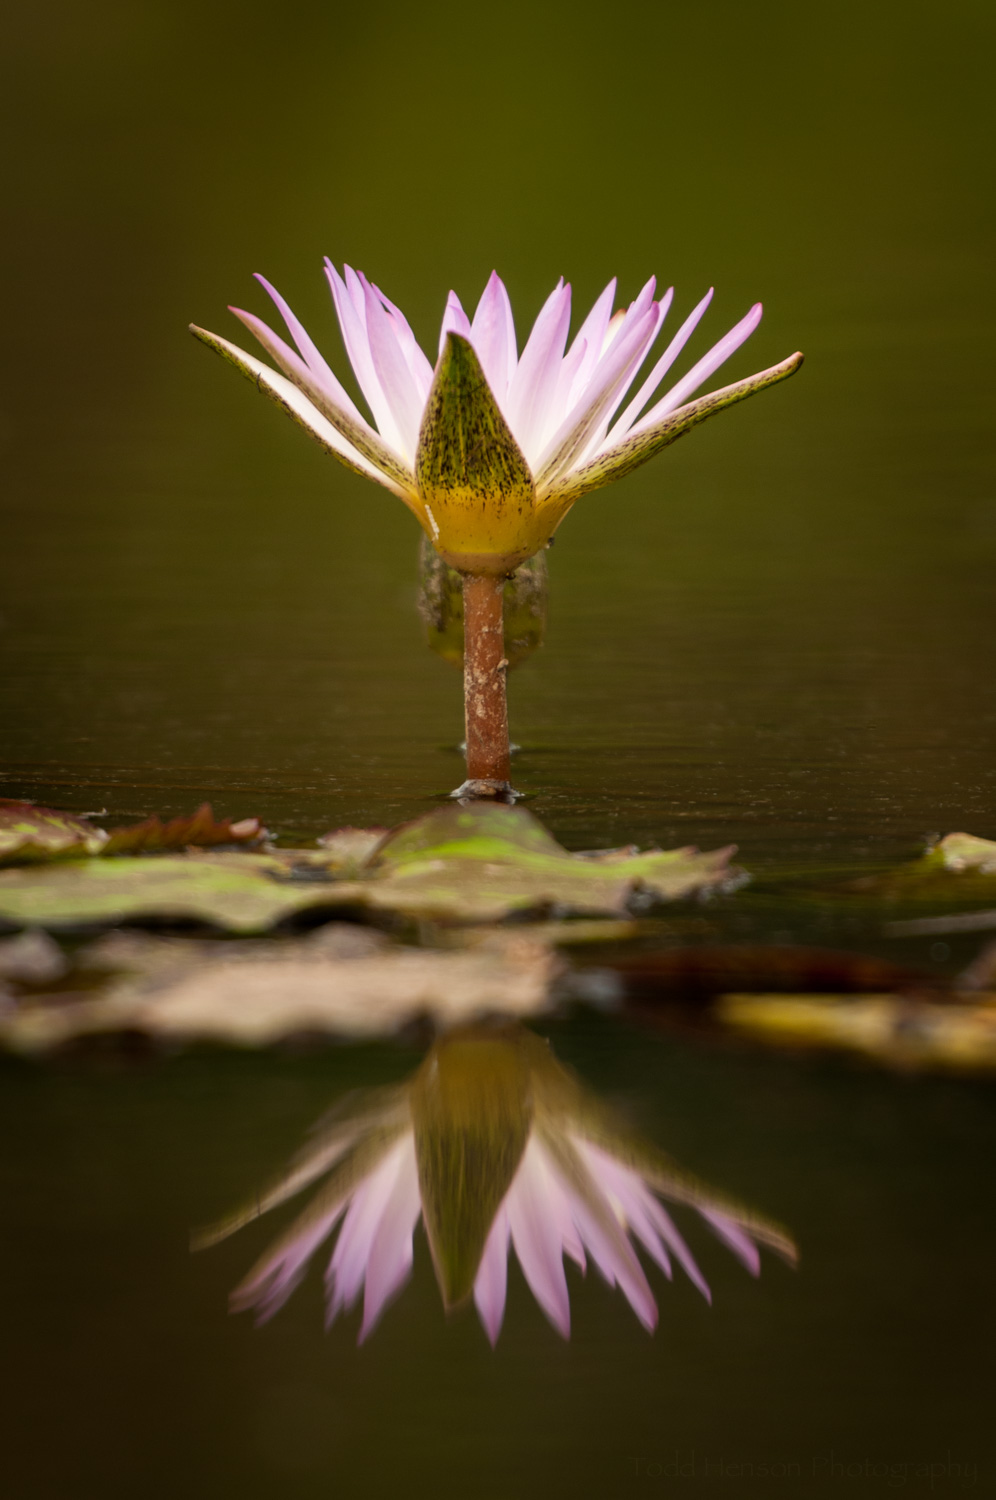 Partially open water lily